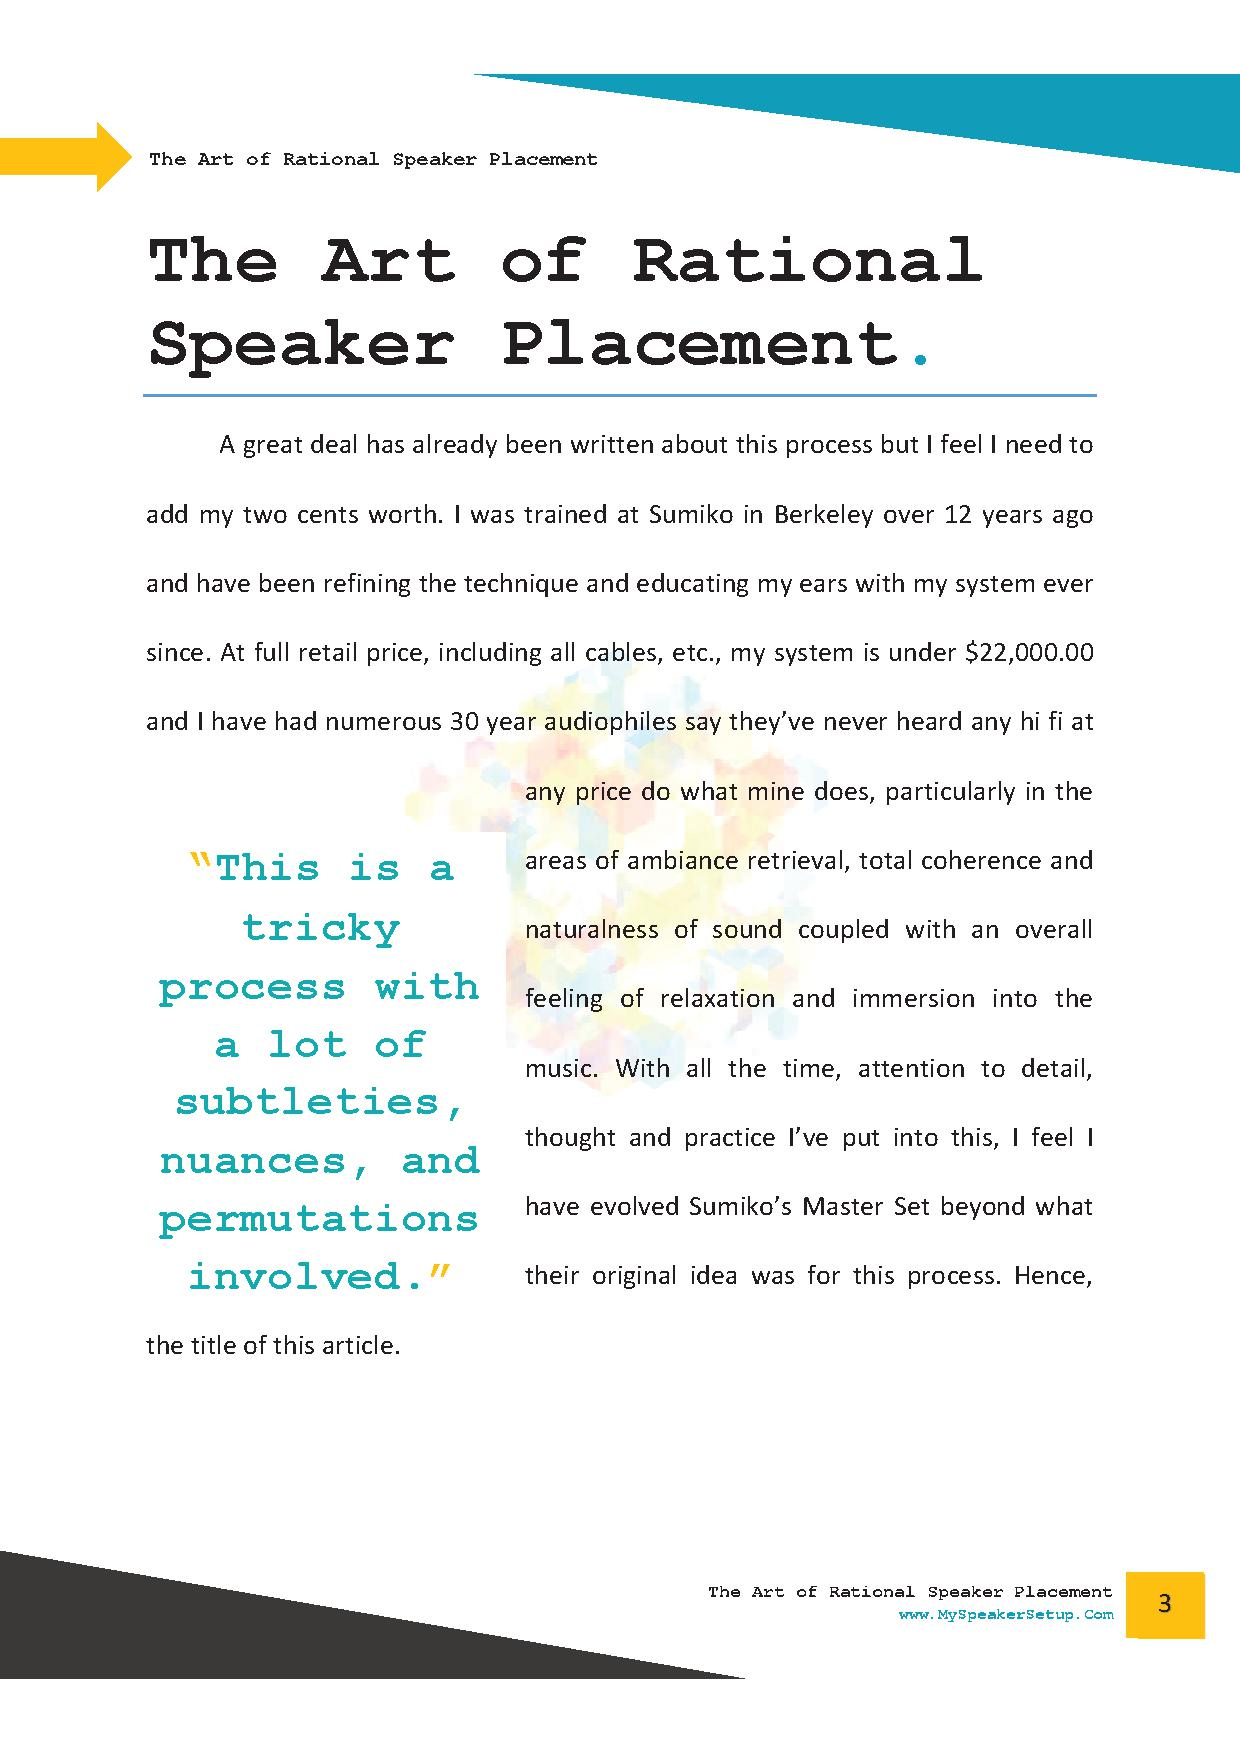 The Art of Rational Speaker Placement Setup Guide Page 2